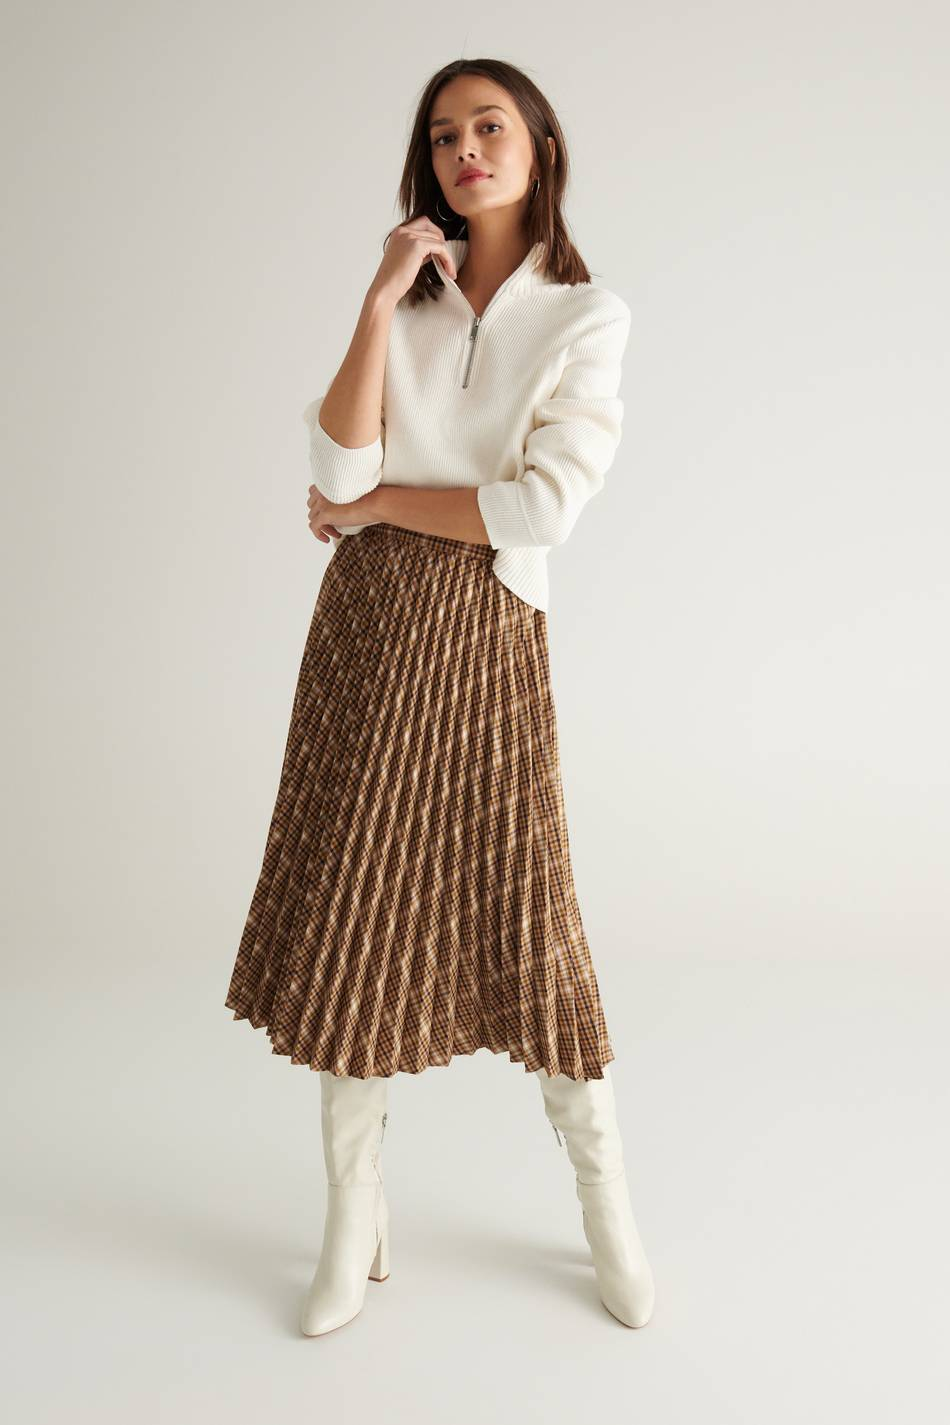 Gina Tricot Ingrid knitted sweater